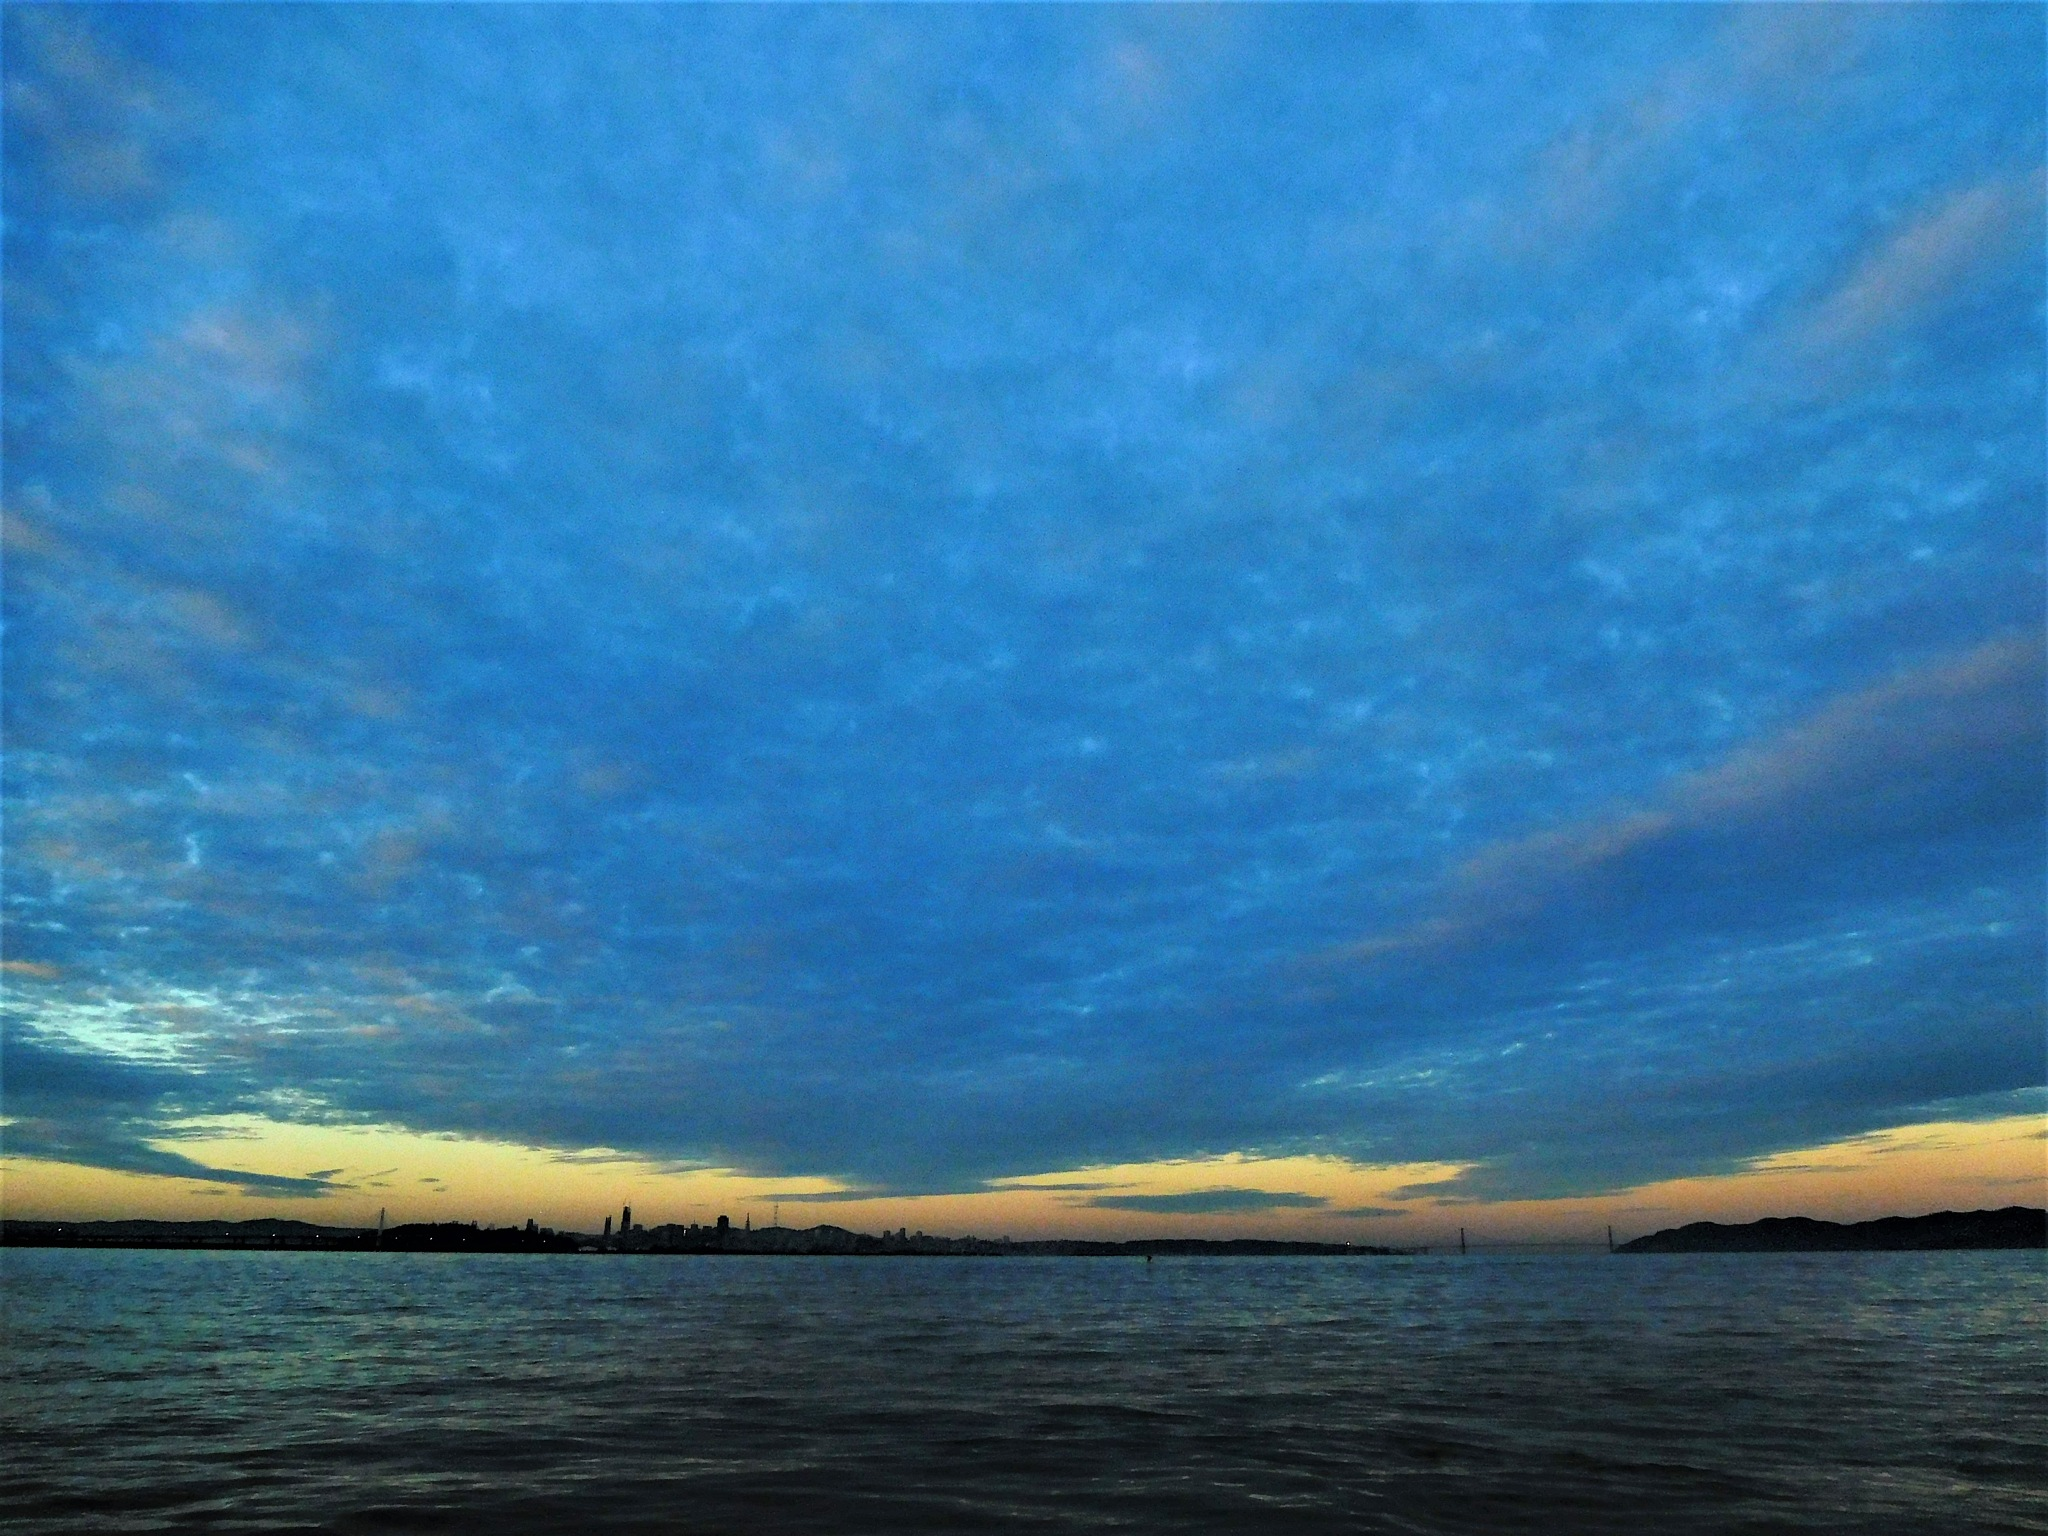 ACROSS THE BAY (Winter Solstice Morning) by SEYMOUR_NAO